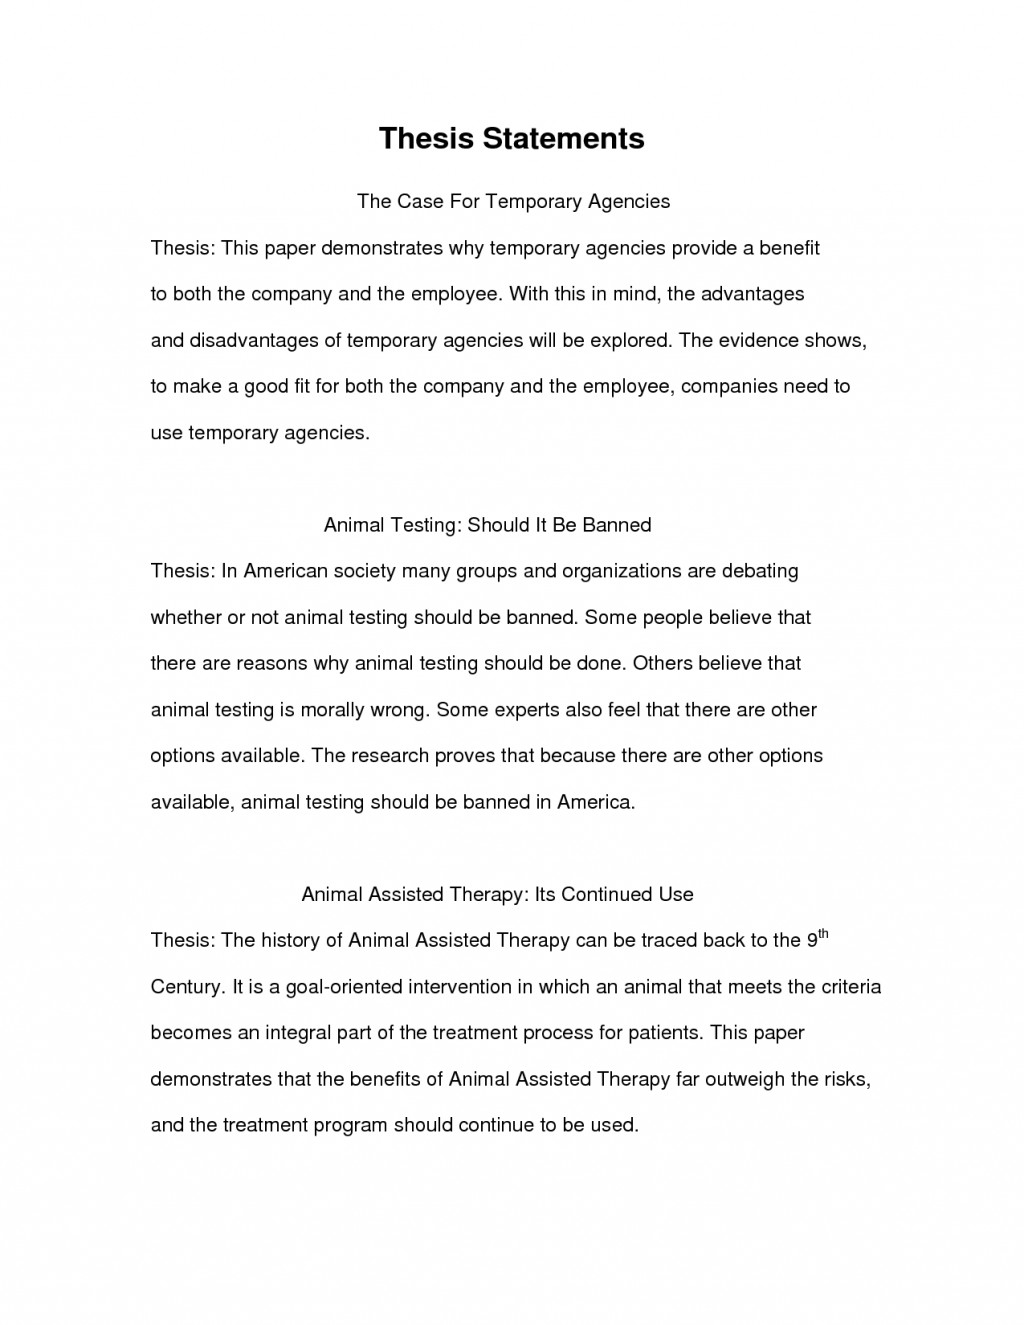 007 Argumentative Research Paper Thesis Examples Example Essay Statement Of Statements For Expository Essaysrative On Cosmetic Surgery Good Narrative Informative Best Large